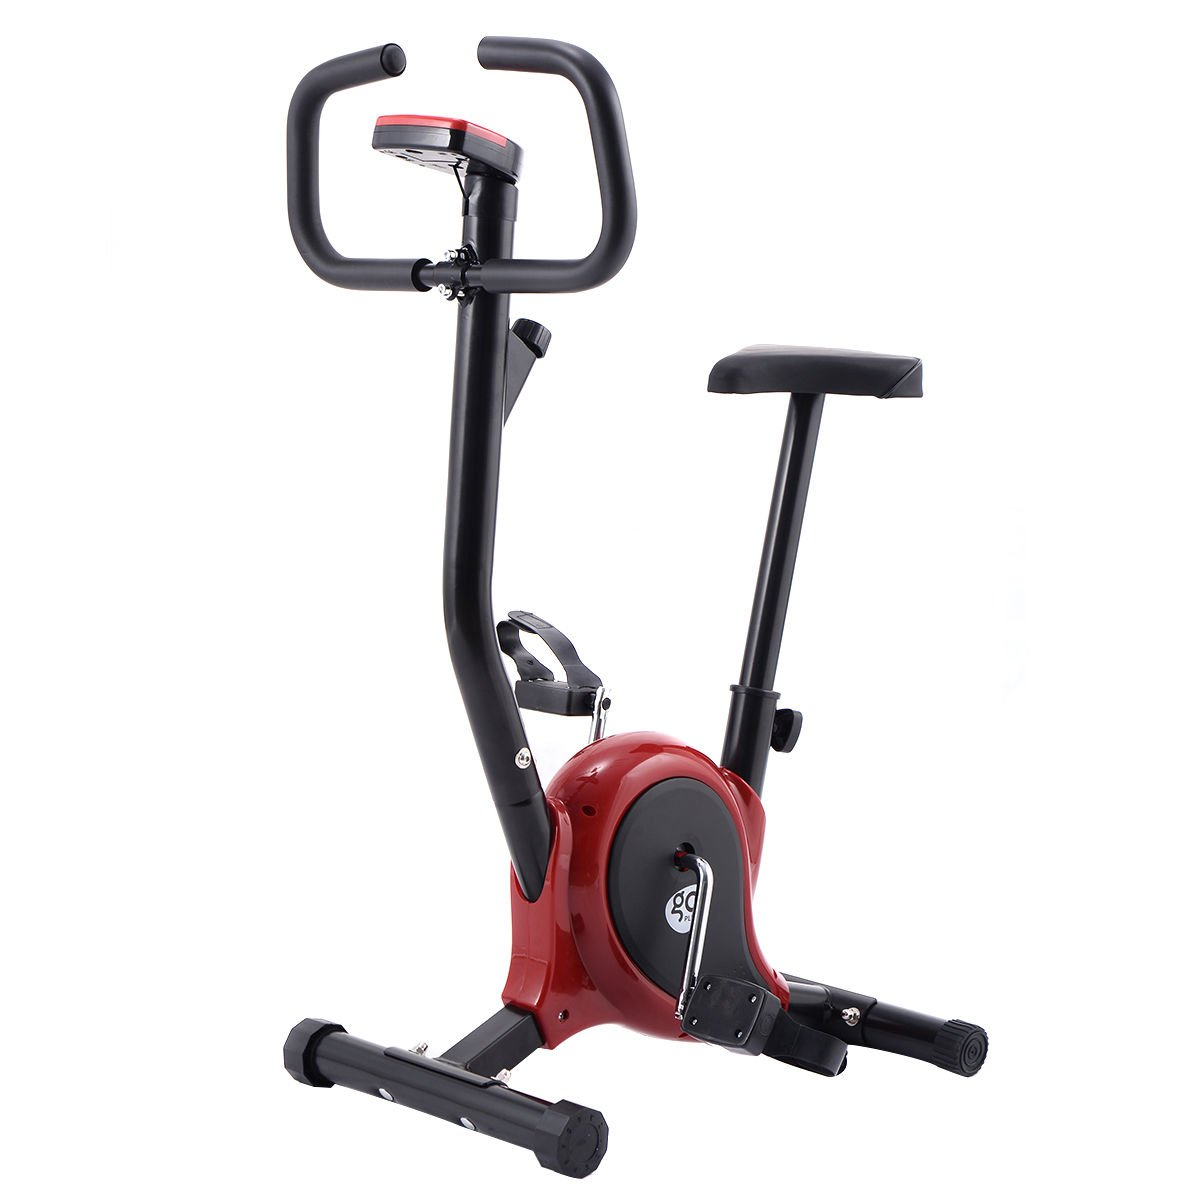 Goplus Fitness Cycling Upright Exercise Bike Stationary Cardio Aerobic Equipment, Red by Goplus